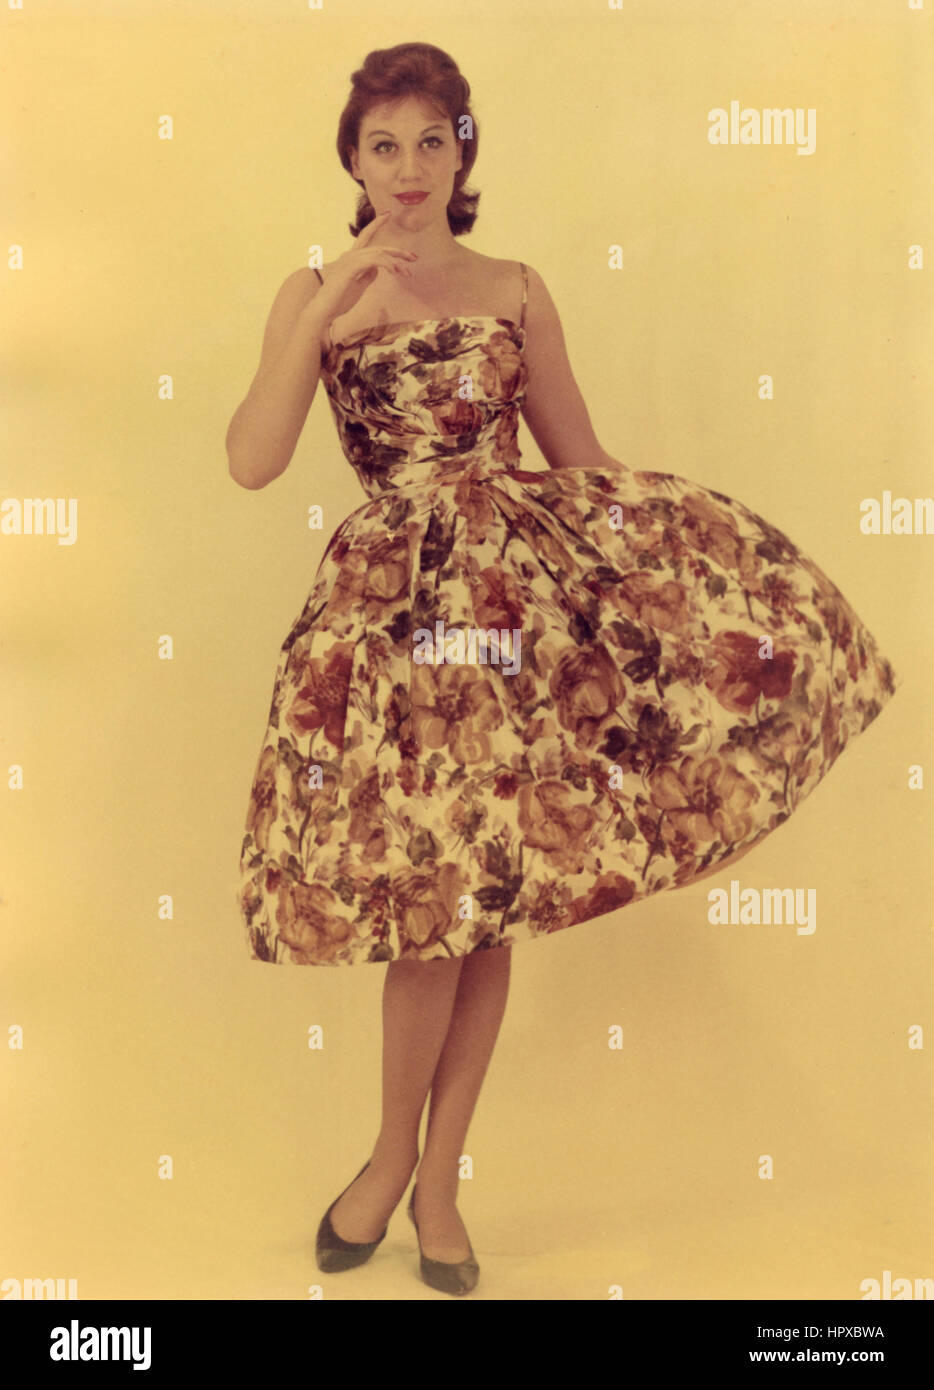 A Model Wearing A Summer Dress With Flowers Italy 1960 Stock Photo